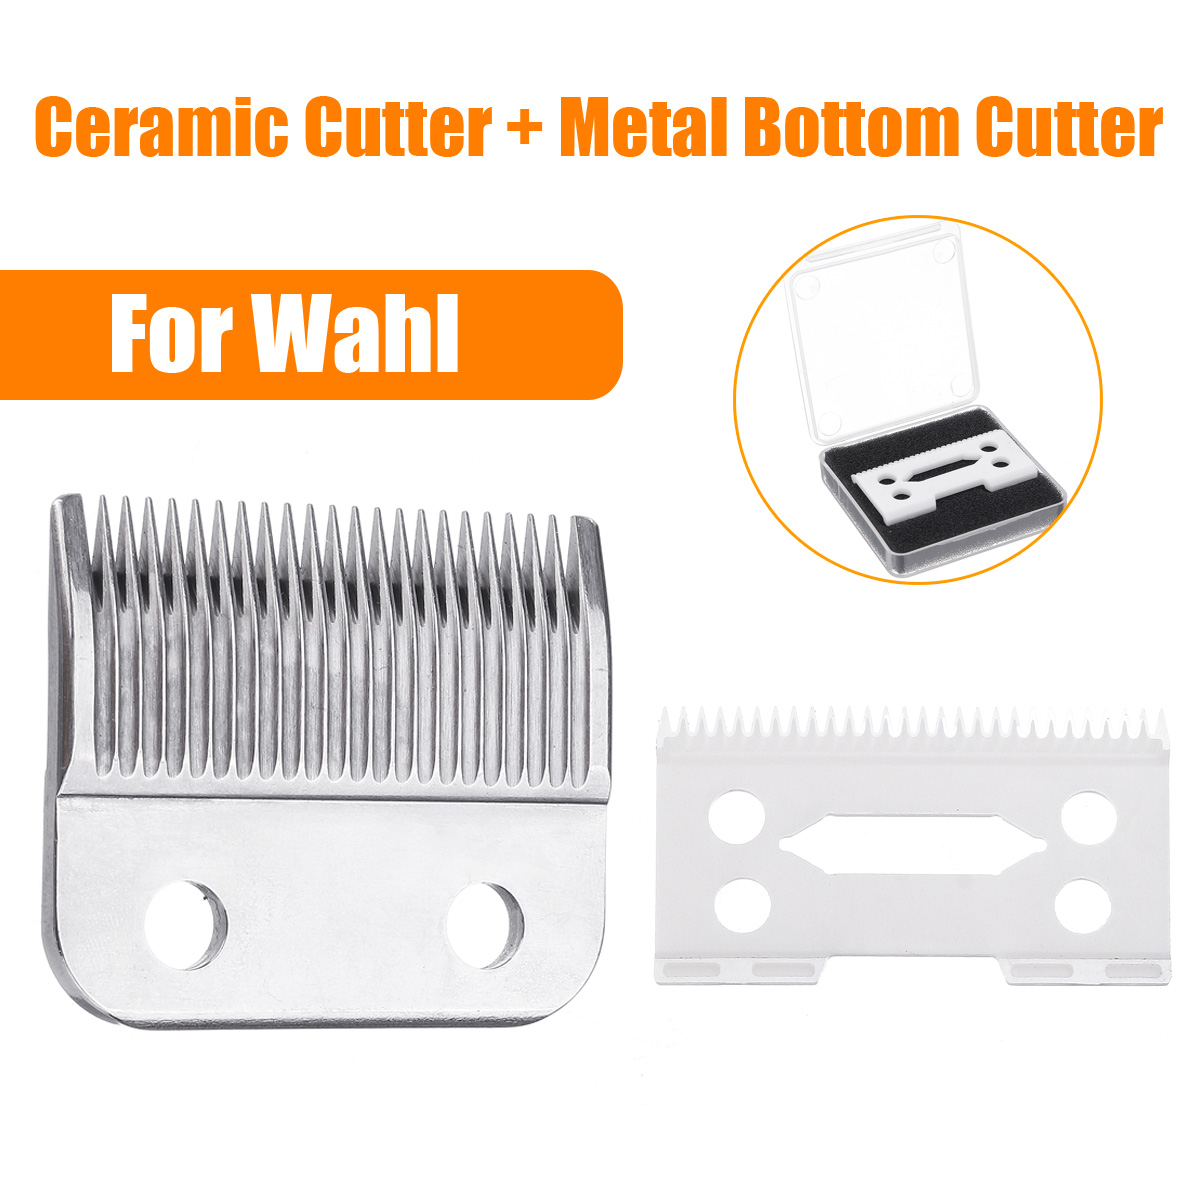 2Pcs Hair Clipper Ceramic Blade Cutter + Metal Bottom Beard Blade Cutter Knife With Box For Wahl Electric Shear Clipper Silver